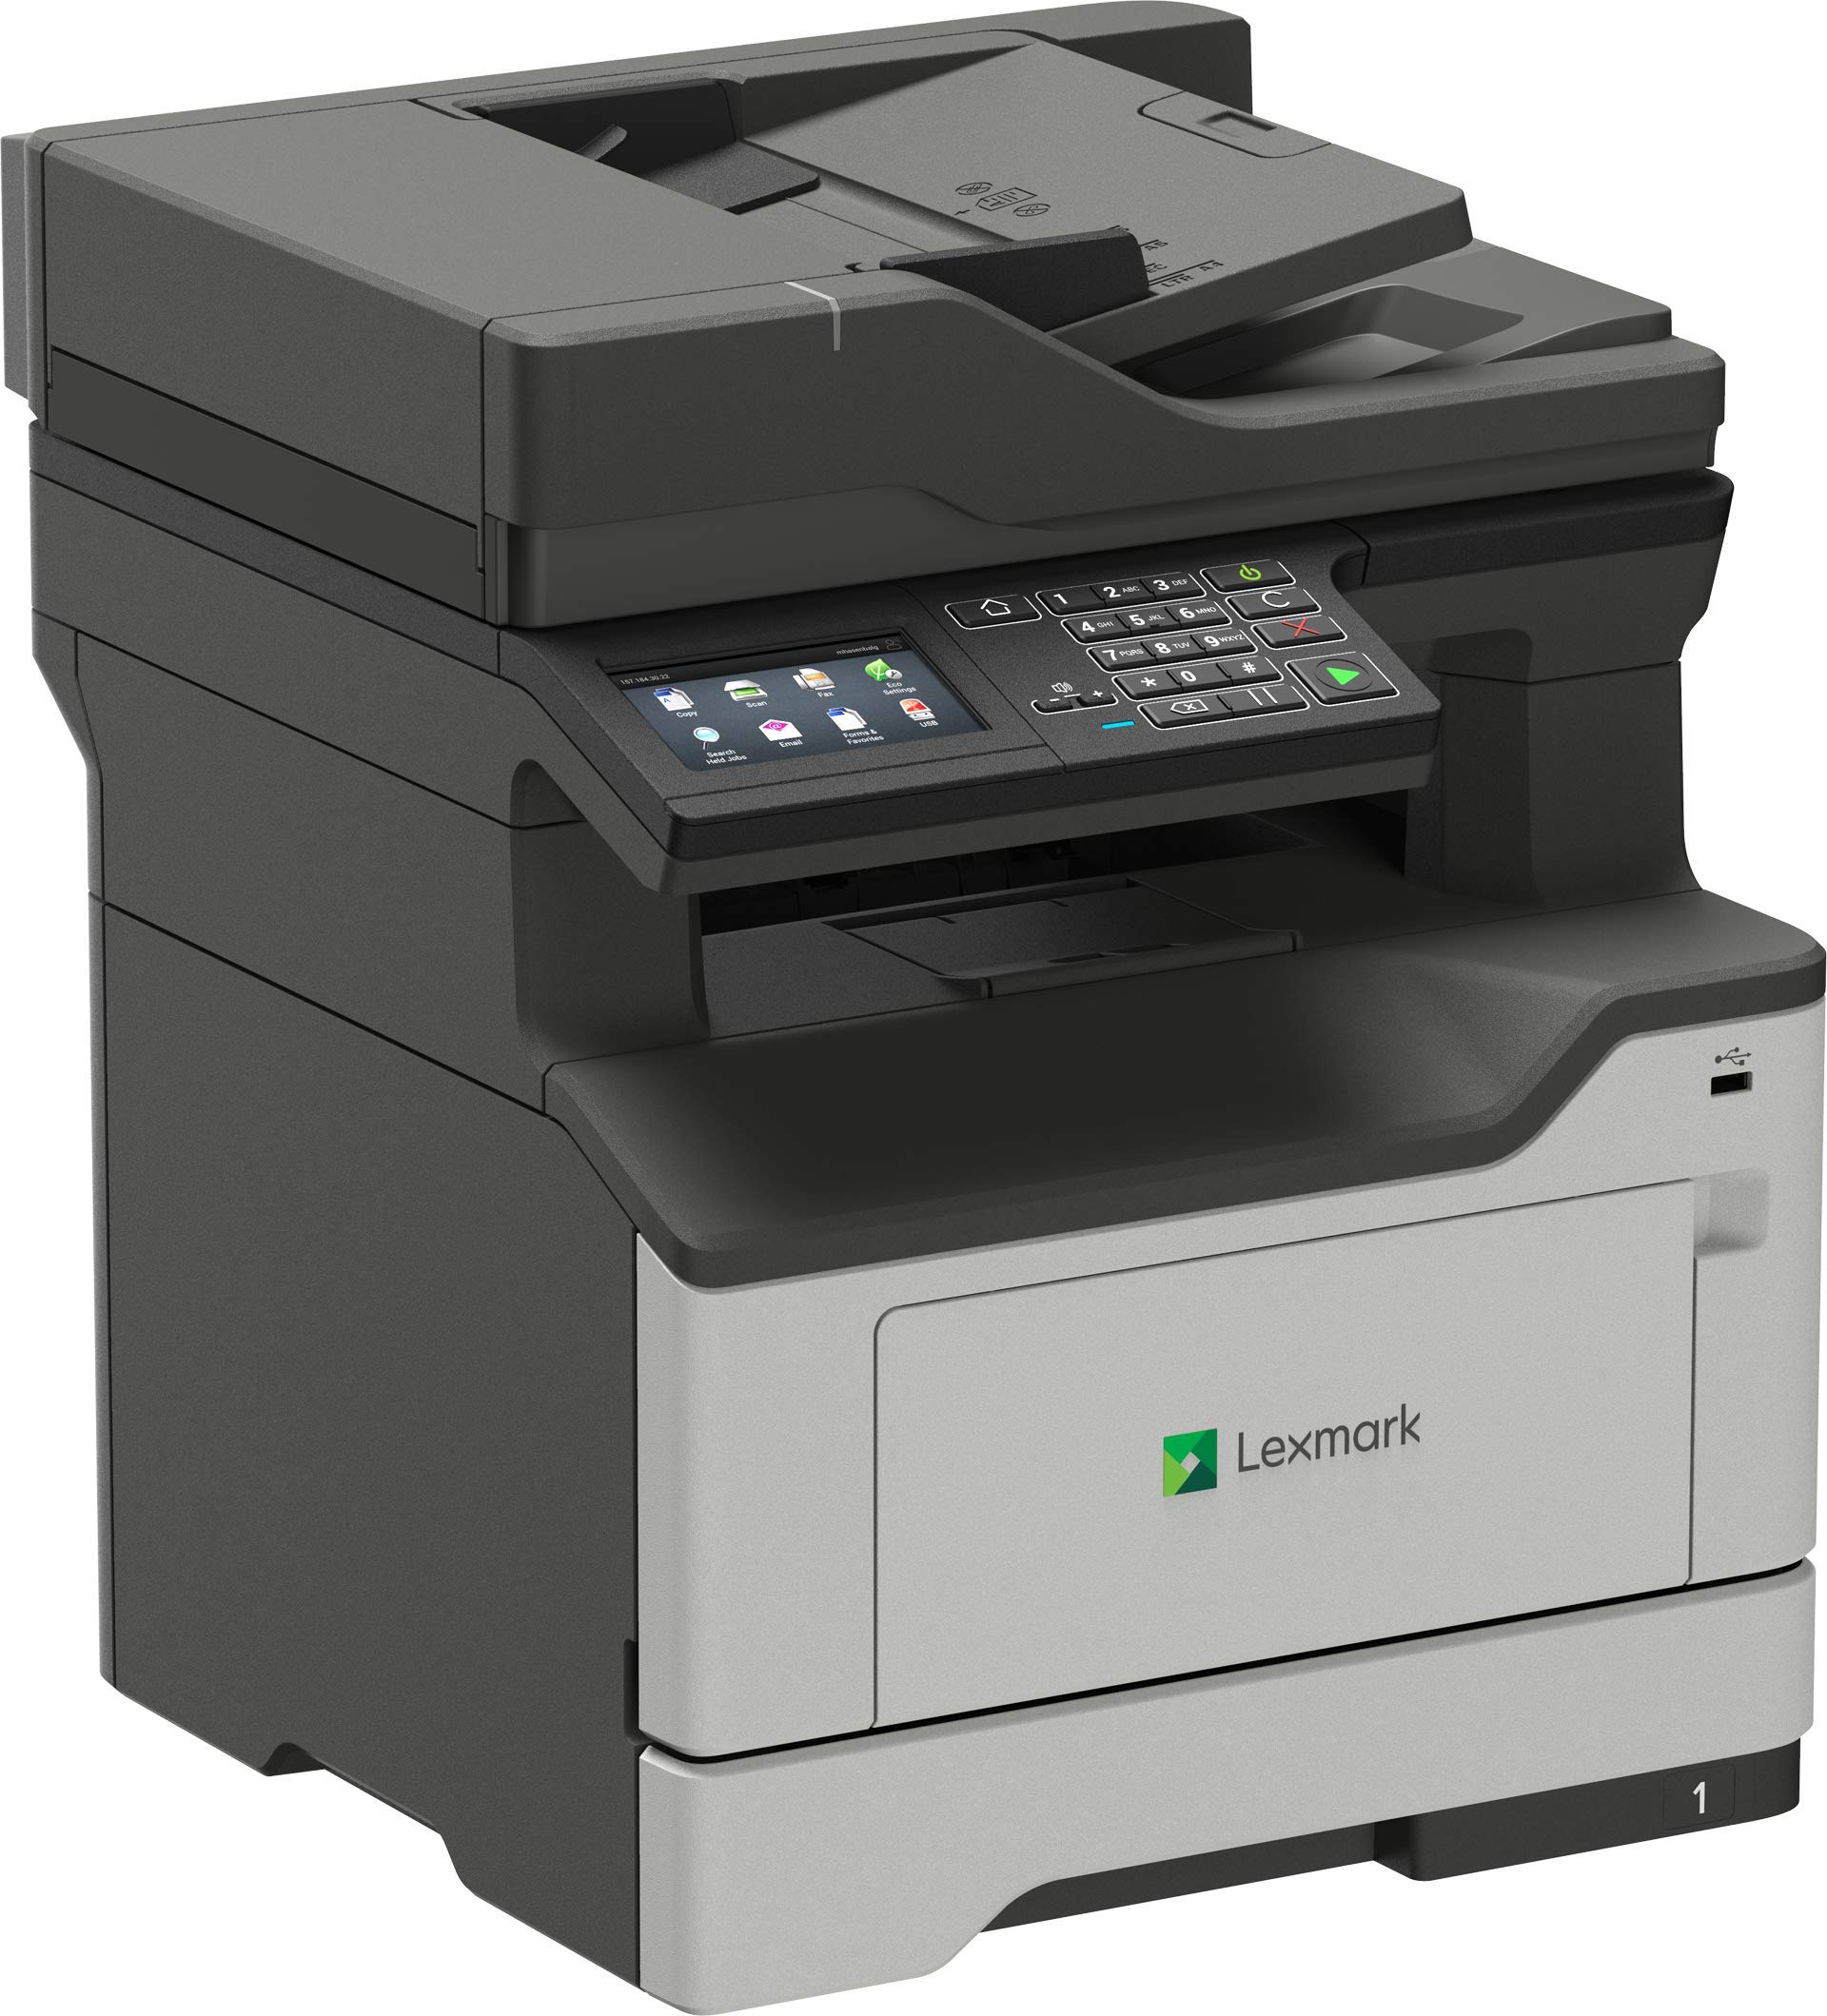 Lexmark MB2442adwe Monochrome Multifunction Printer with fax scan Copy Interactive Touch Screen Wi-Fi and Air Print Capabilities (36SC720) by Lexmark (Image #4)